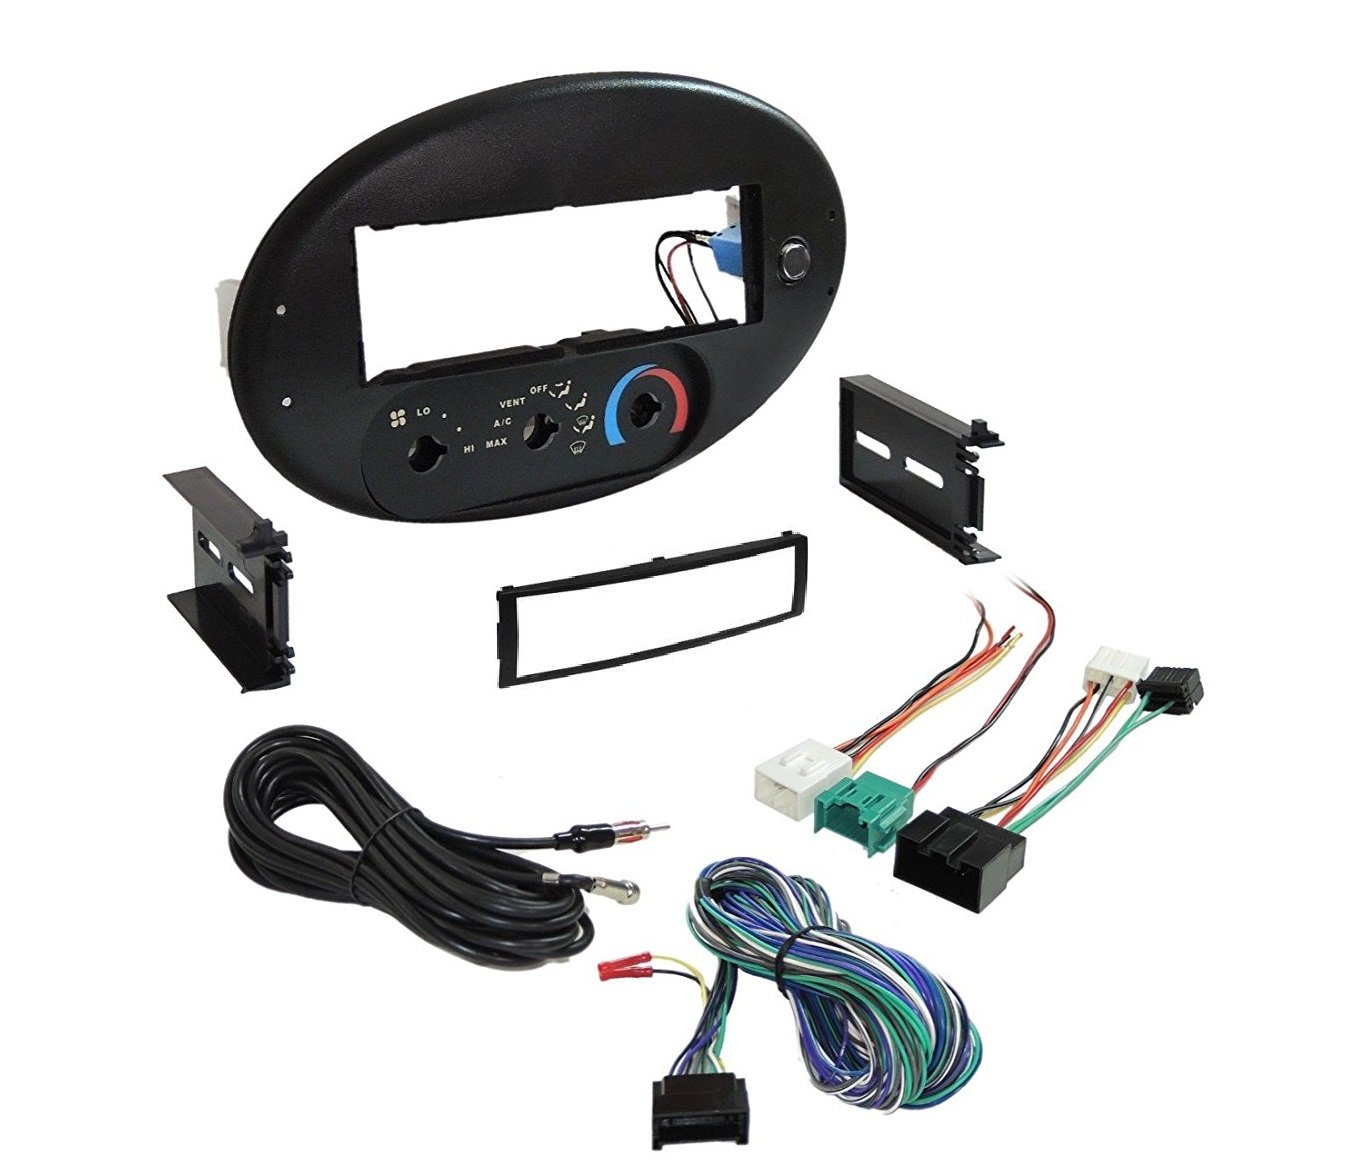 Amazon.com: Car Radio Stereo CD Player Dash Install Mounting Trim Bezel  Panel 1996-1999 Ford Taurus/Sable Dash Kit: Car Electronics